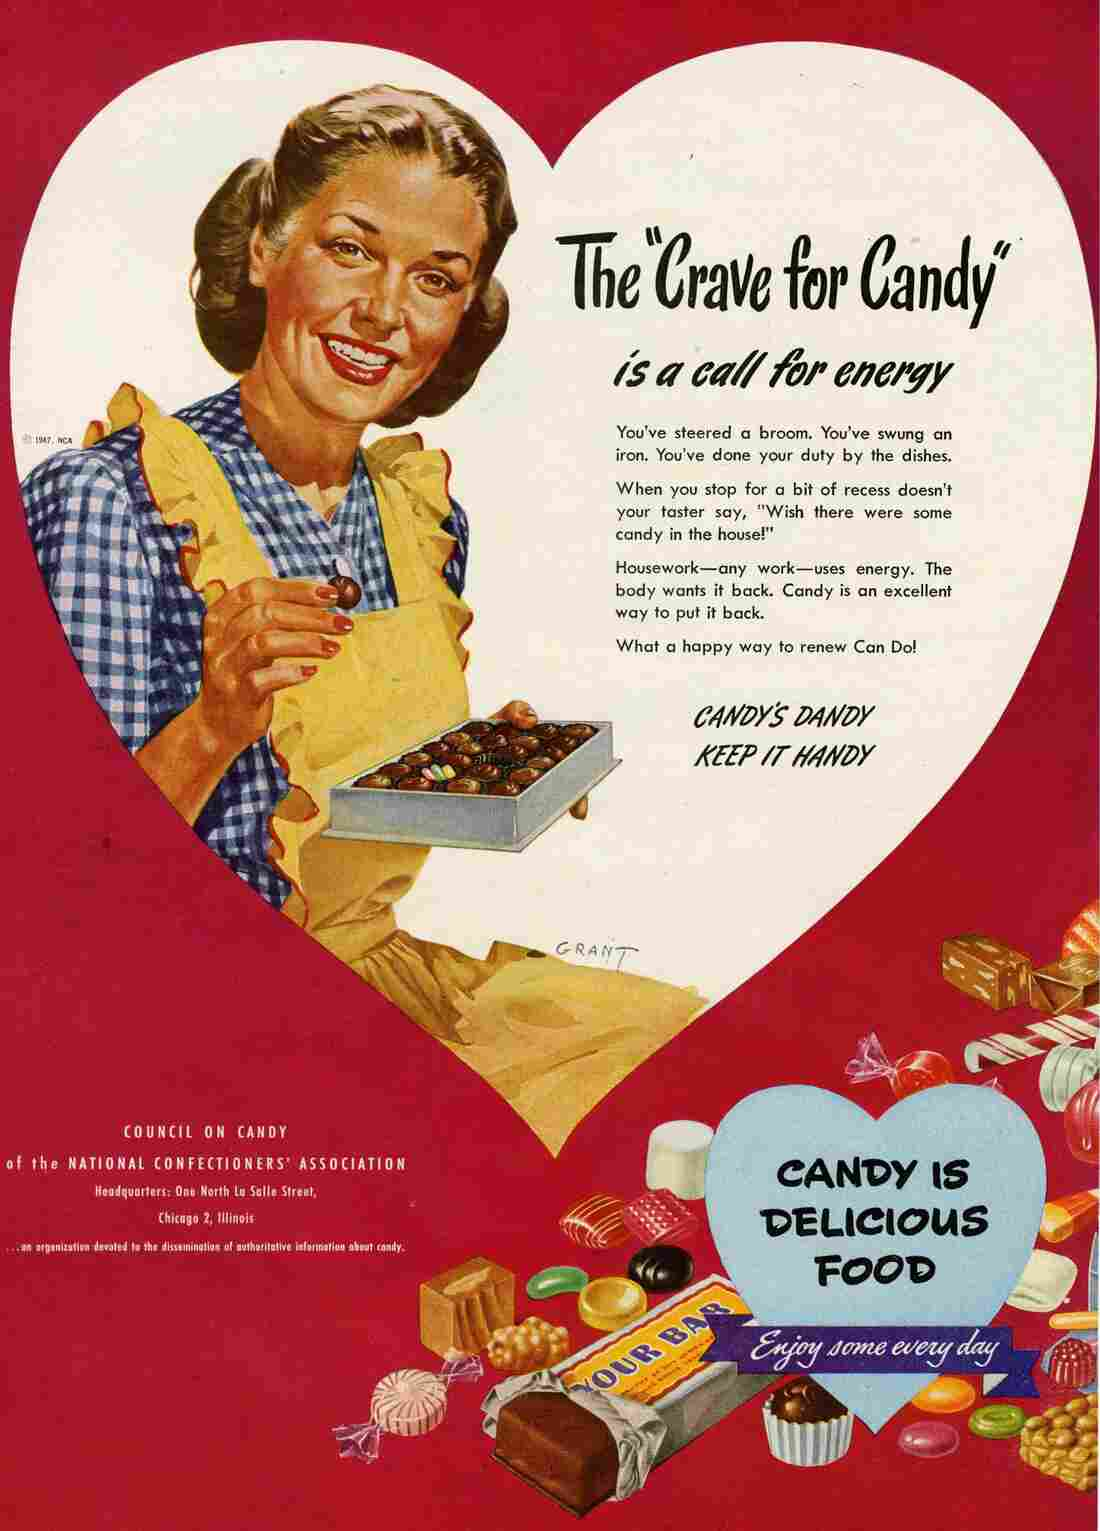 Looks like sitting around eating bonbons all day actually has a purpose — according to this 1947 ad, candy is a great way to replenish energy sapped by a long day of housework.